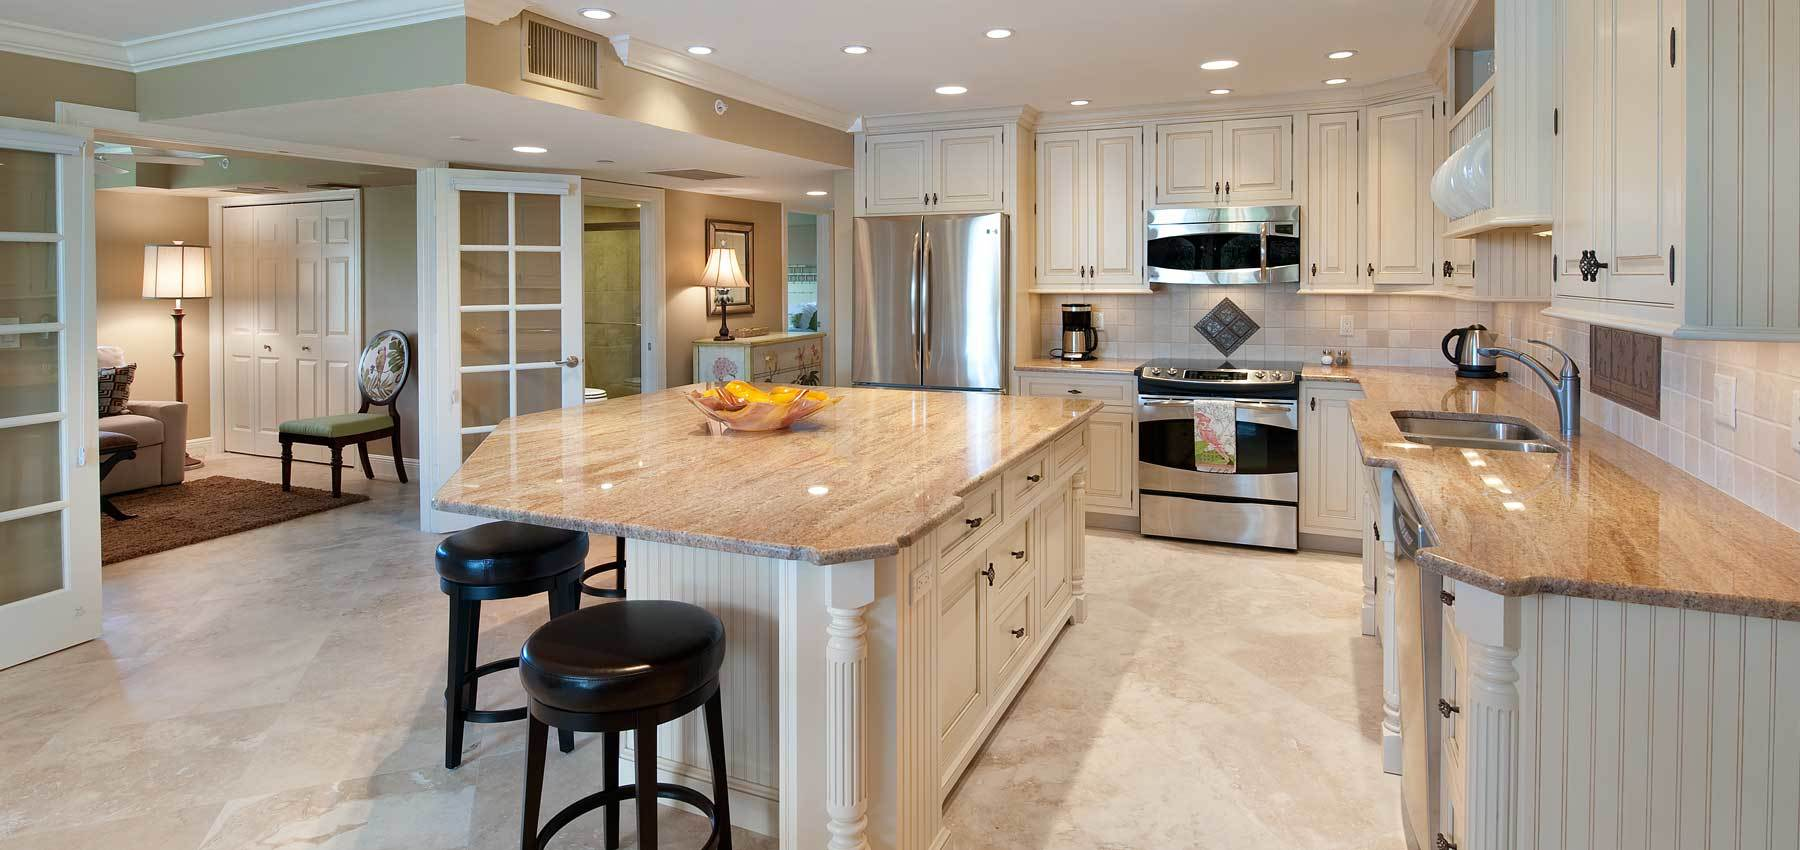 Kitchen remodeling kgt remodeling for Home improvement ideas for kitchen